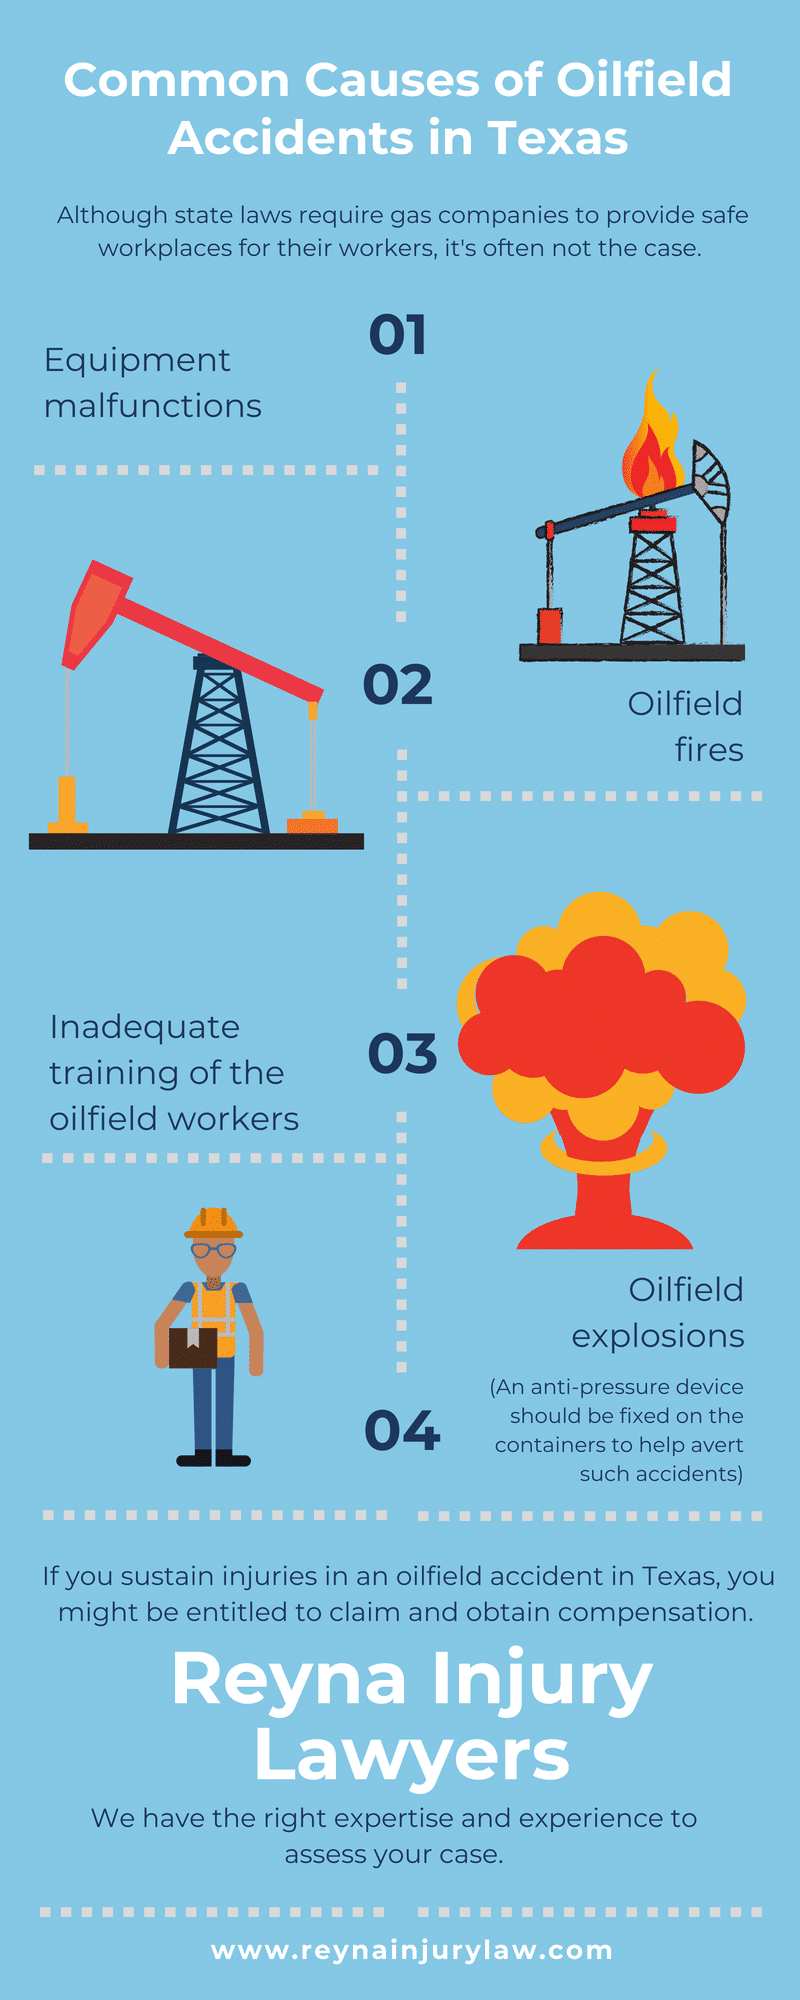 Common Causes of Oilfield Accidents in Texas